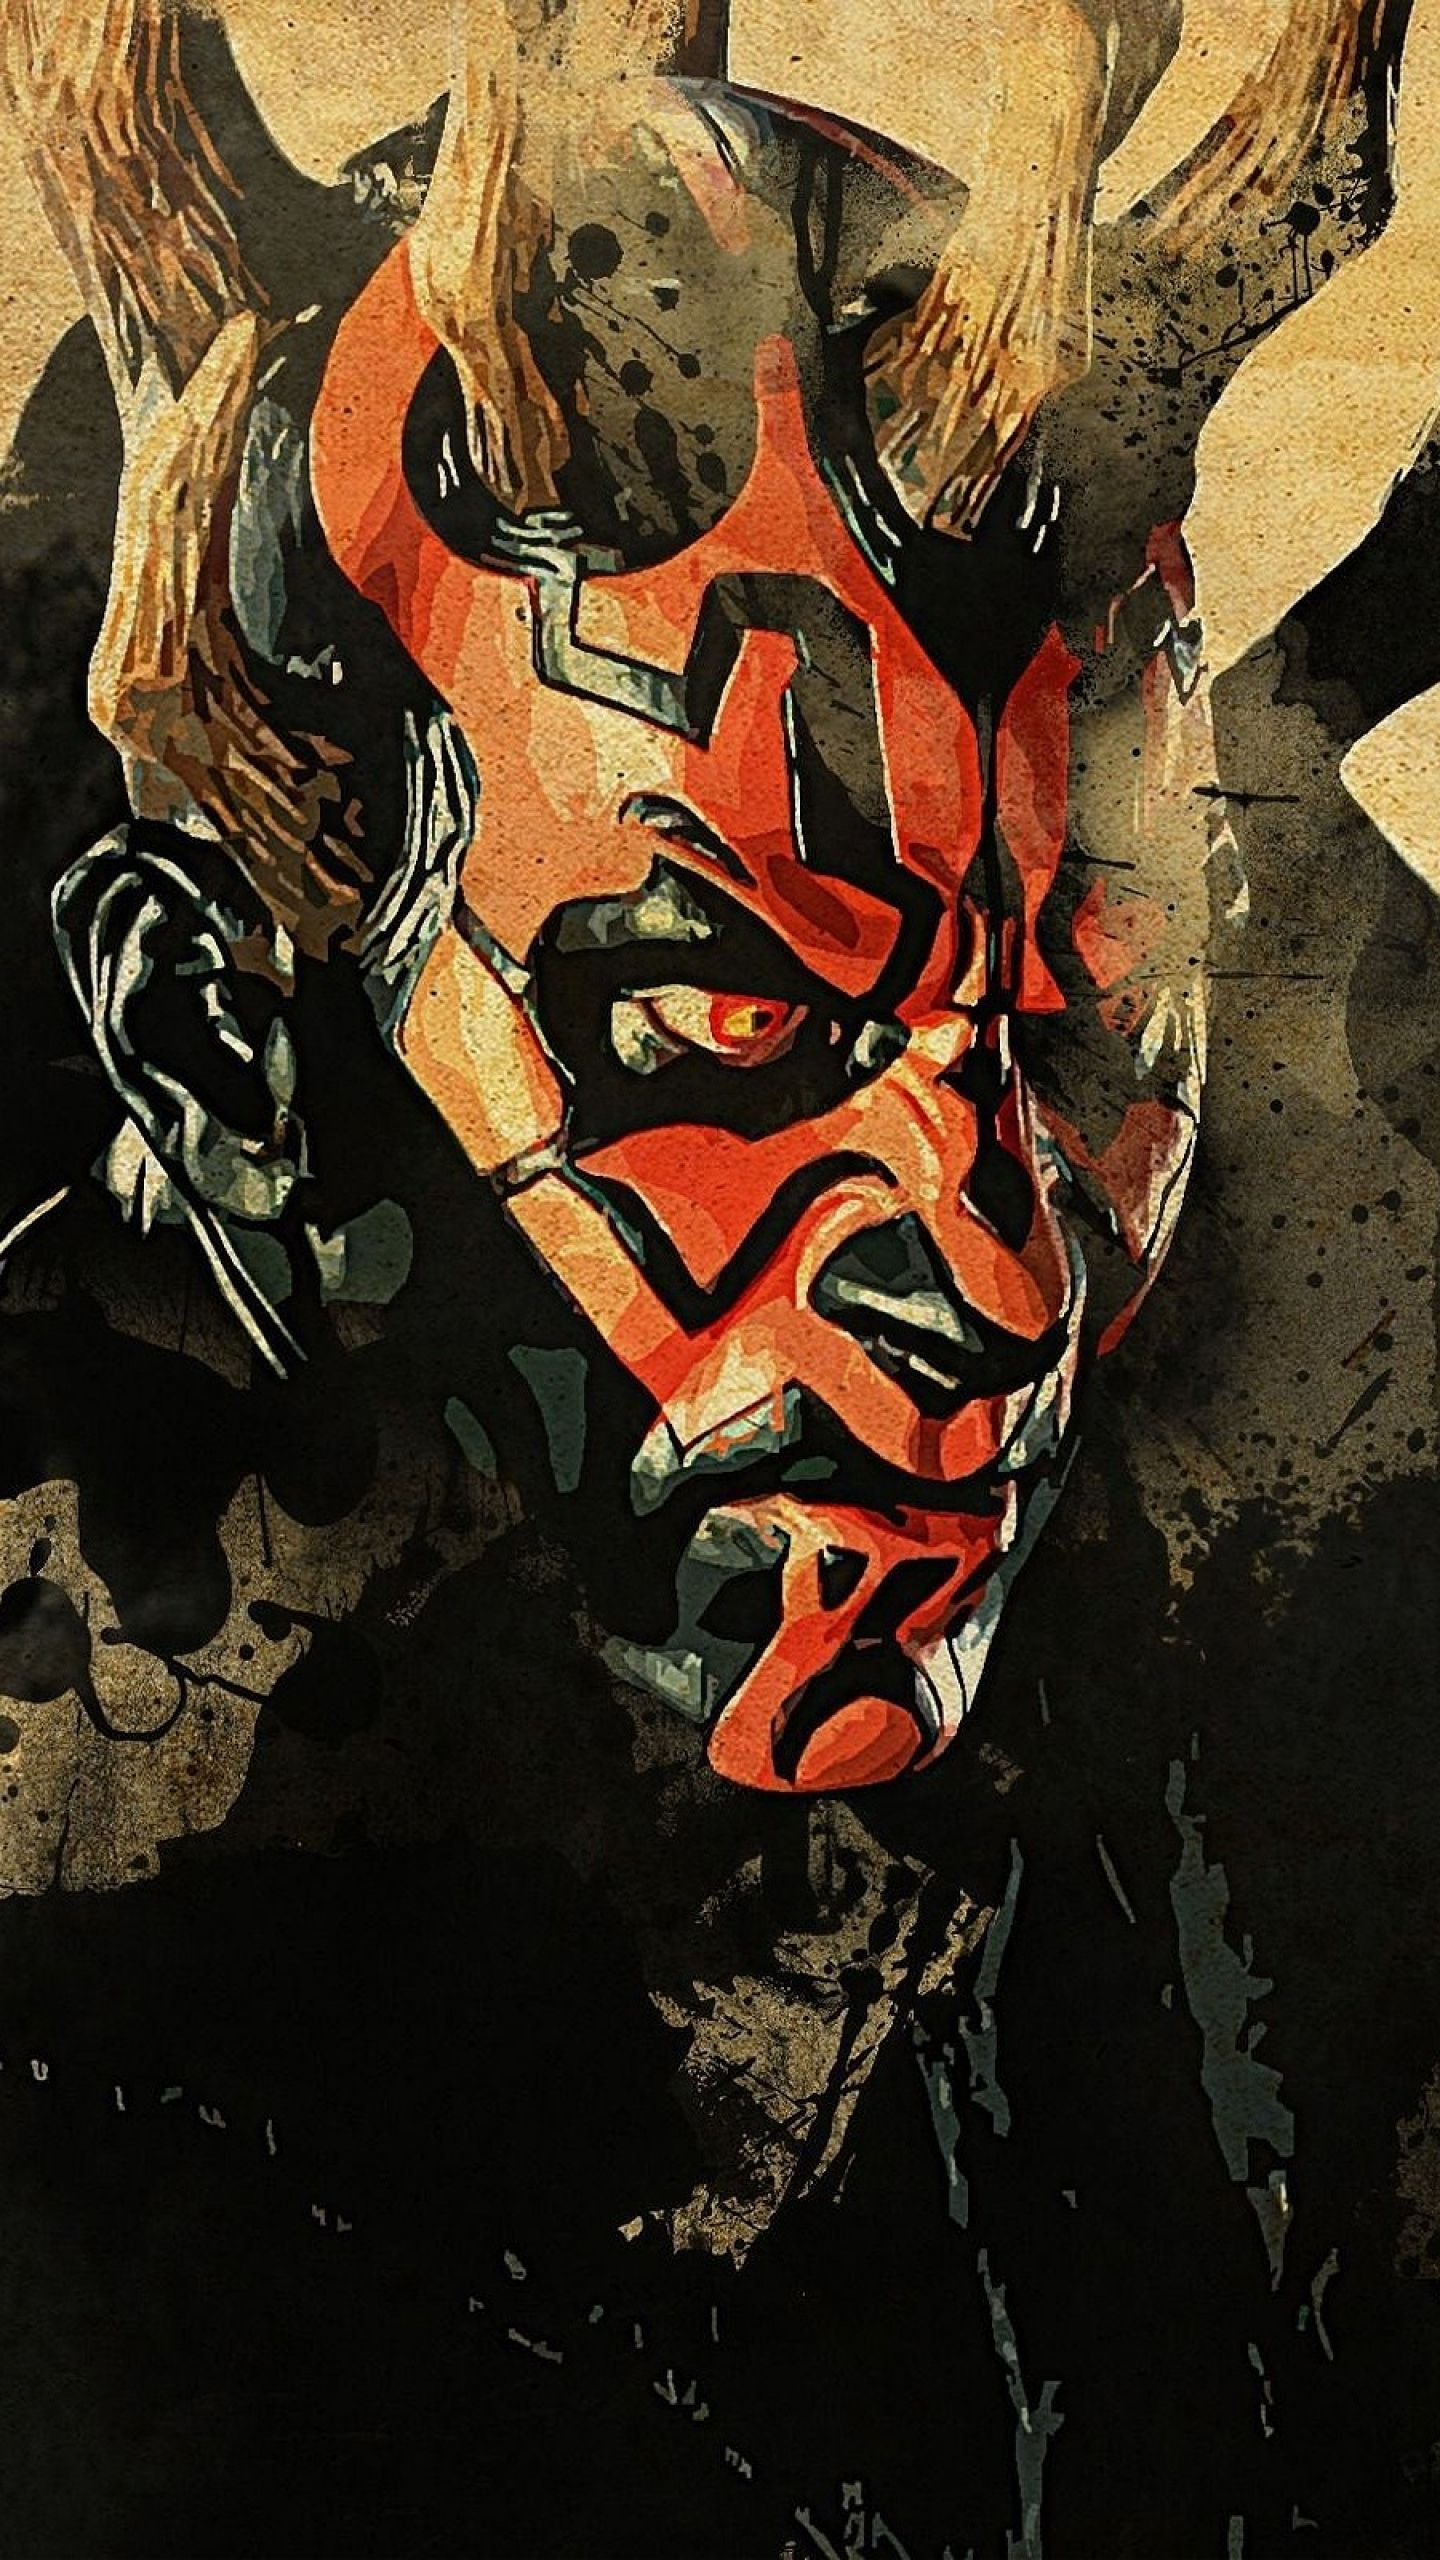 darth maul | star wars: maul madness | pinterest | darth maul